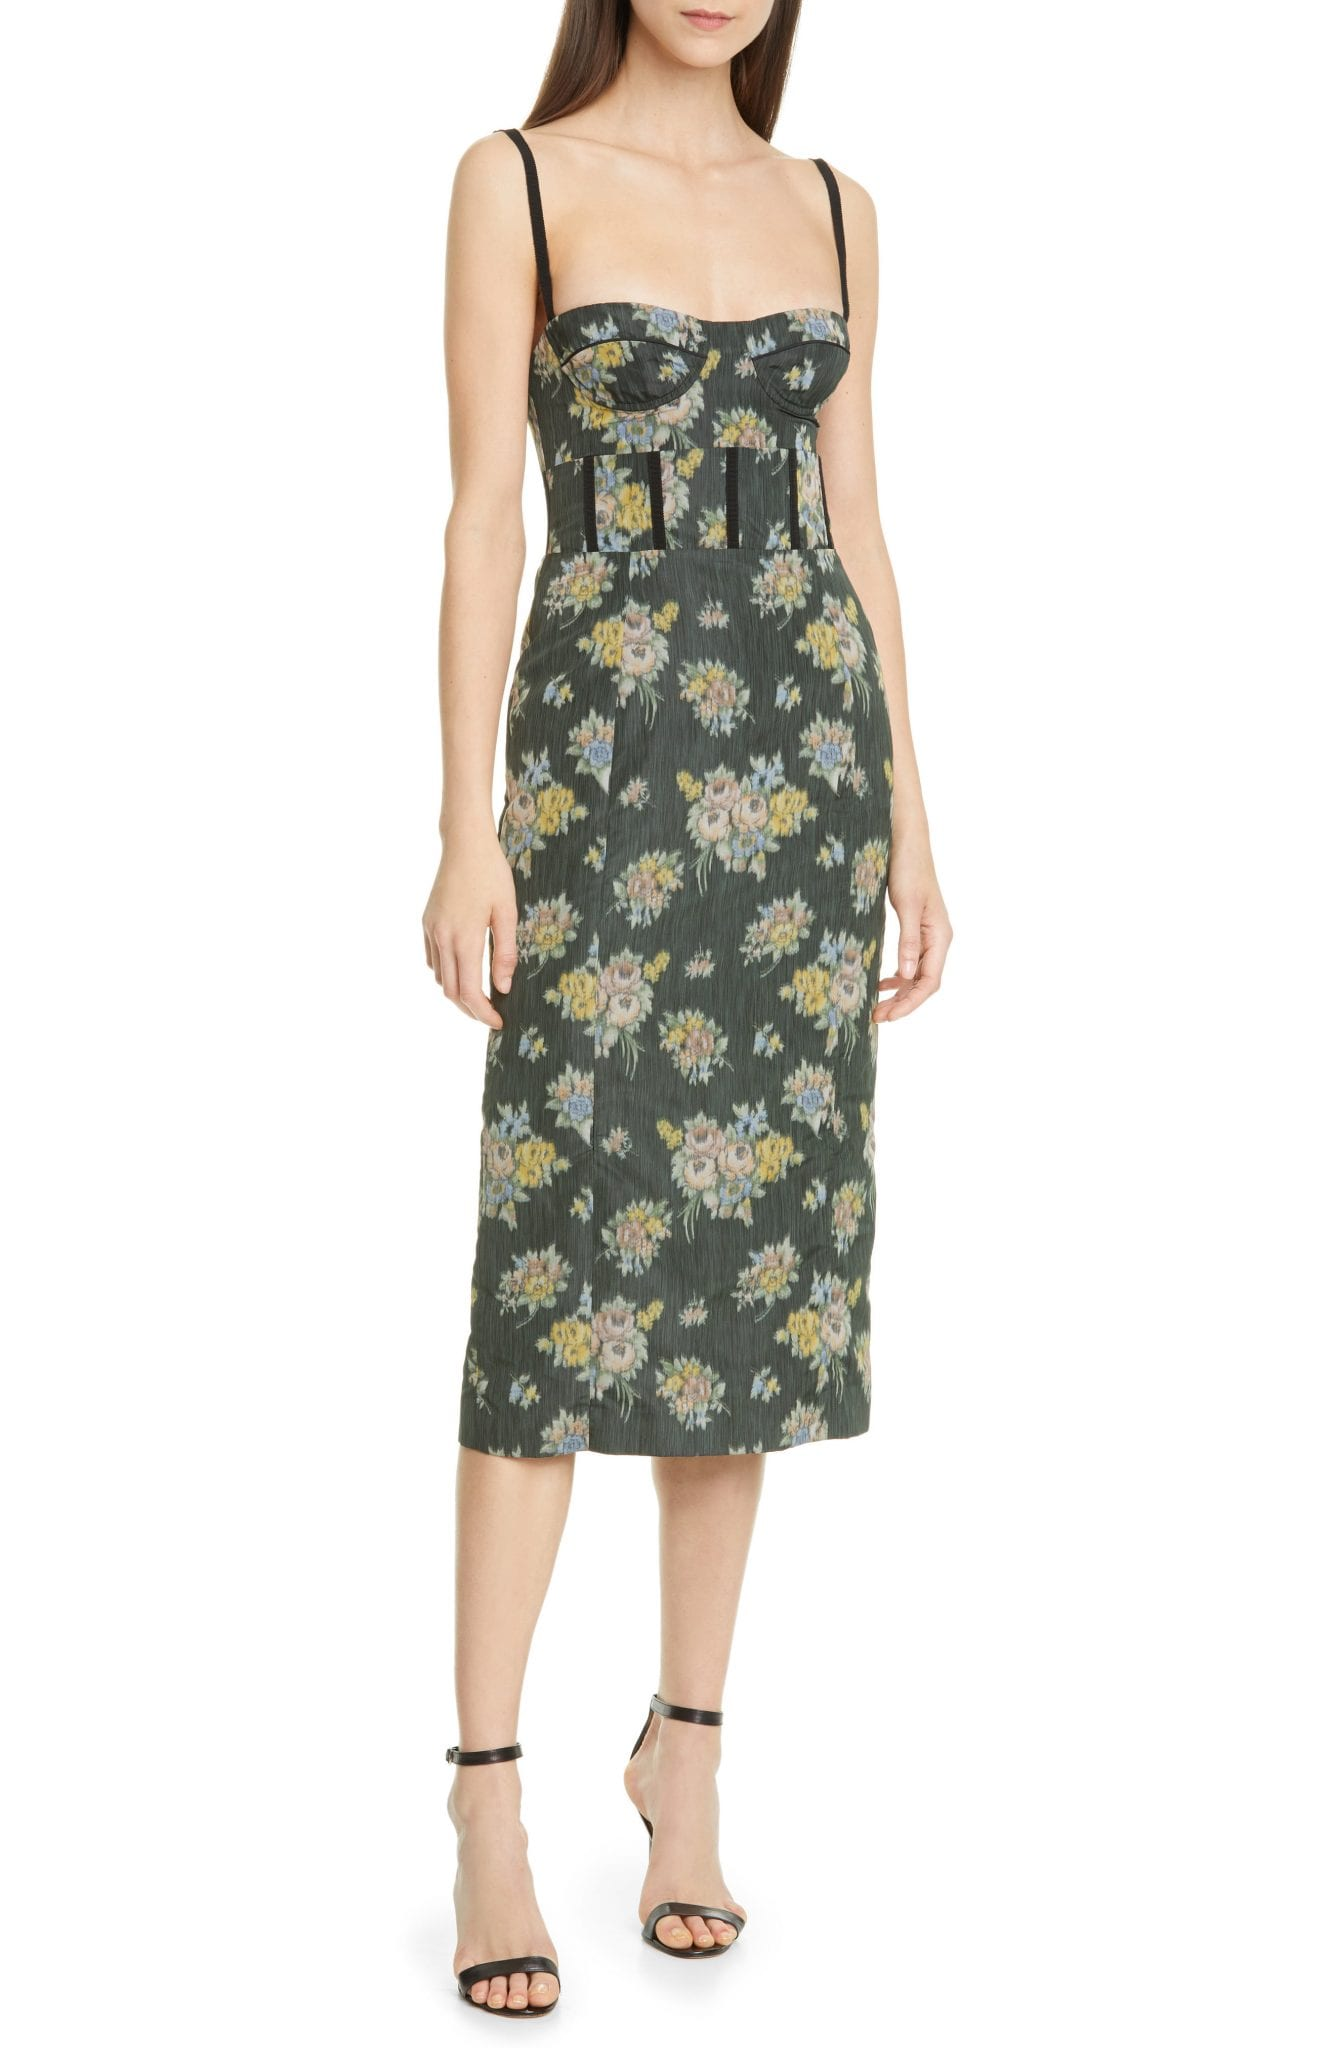 BROCK COLLECTION Floral Print Bustier Dress